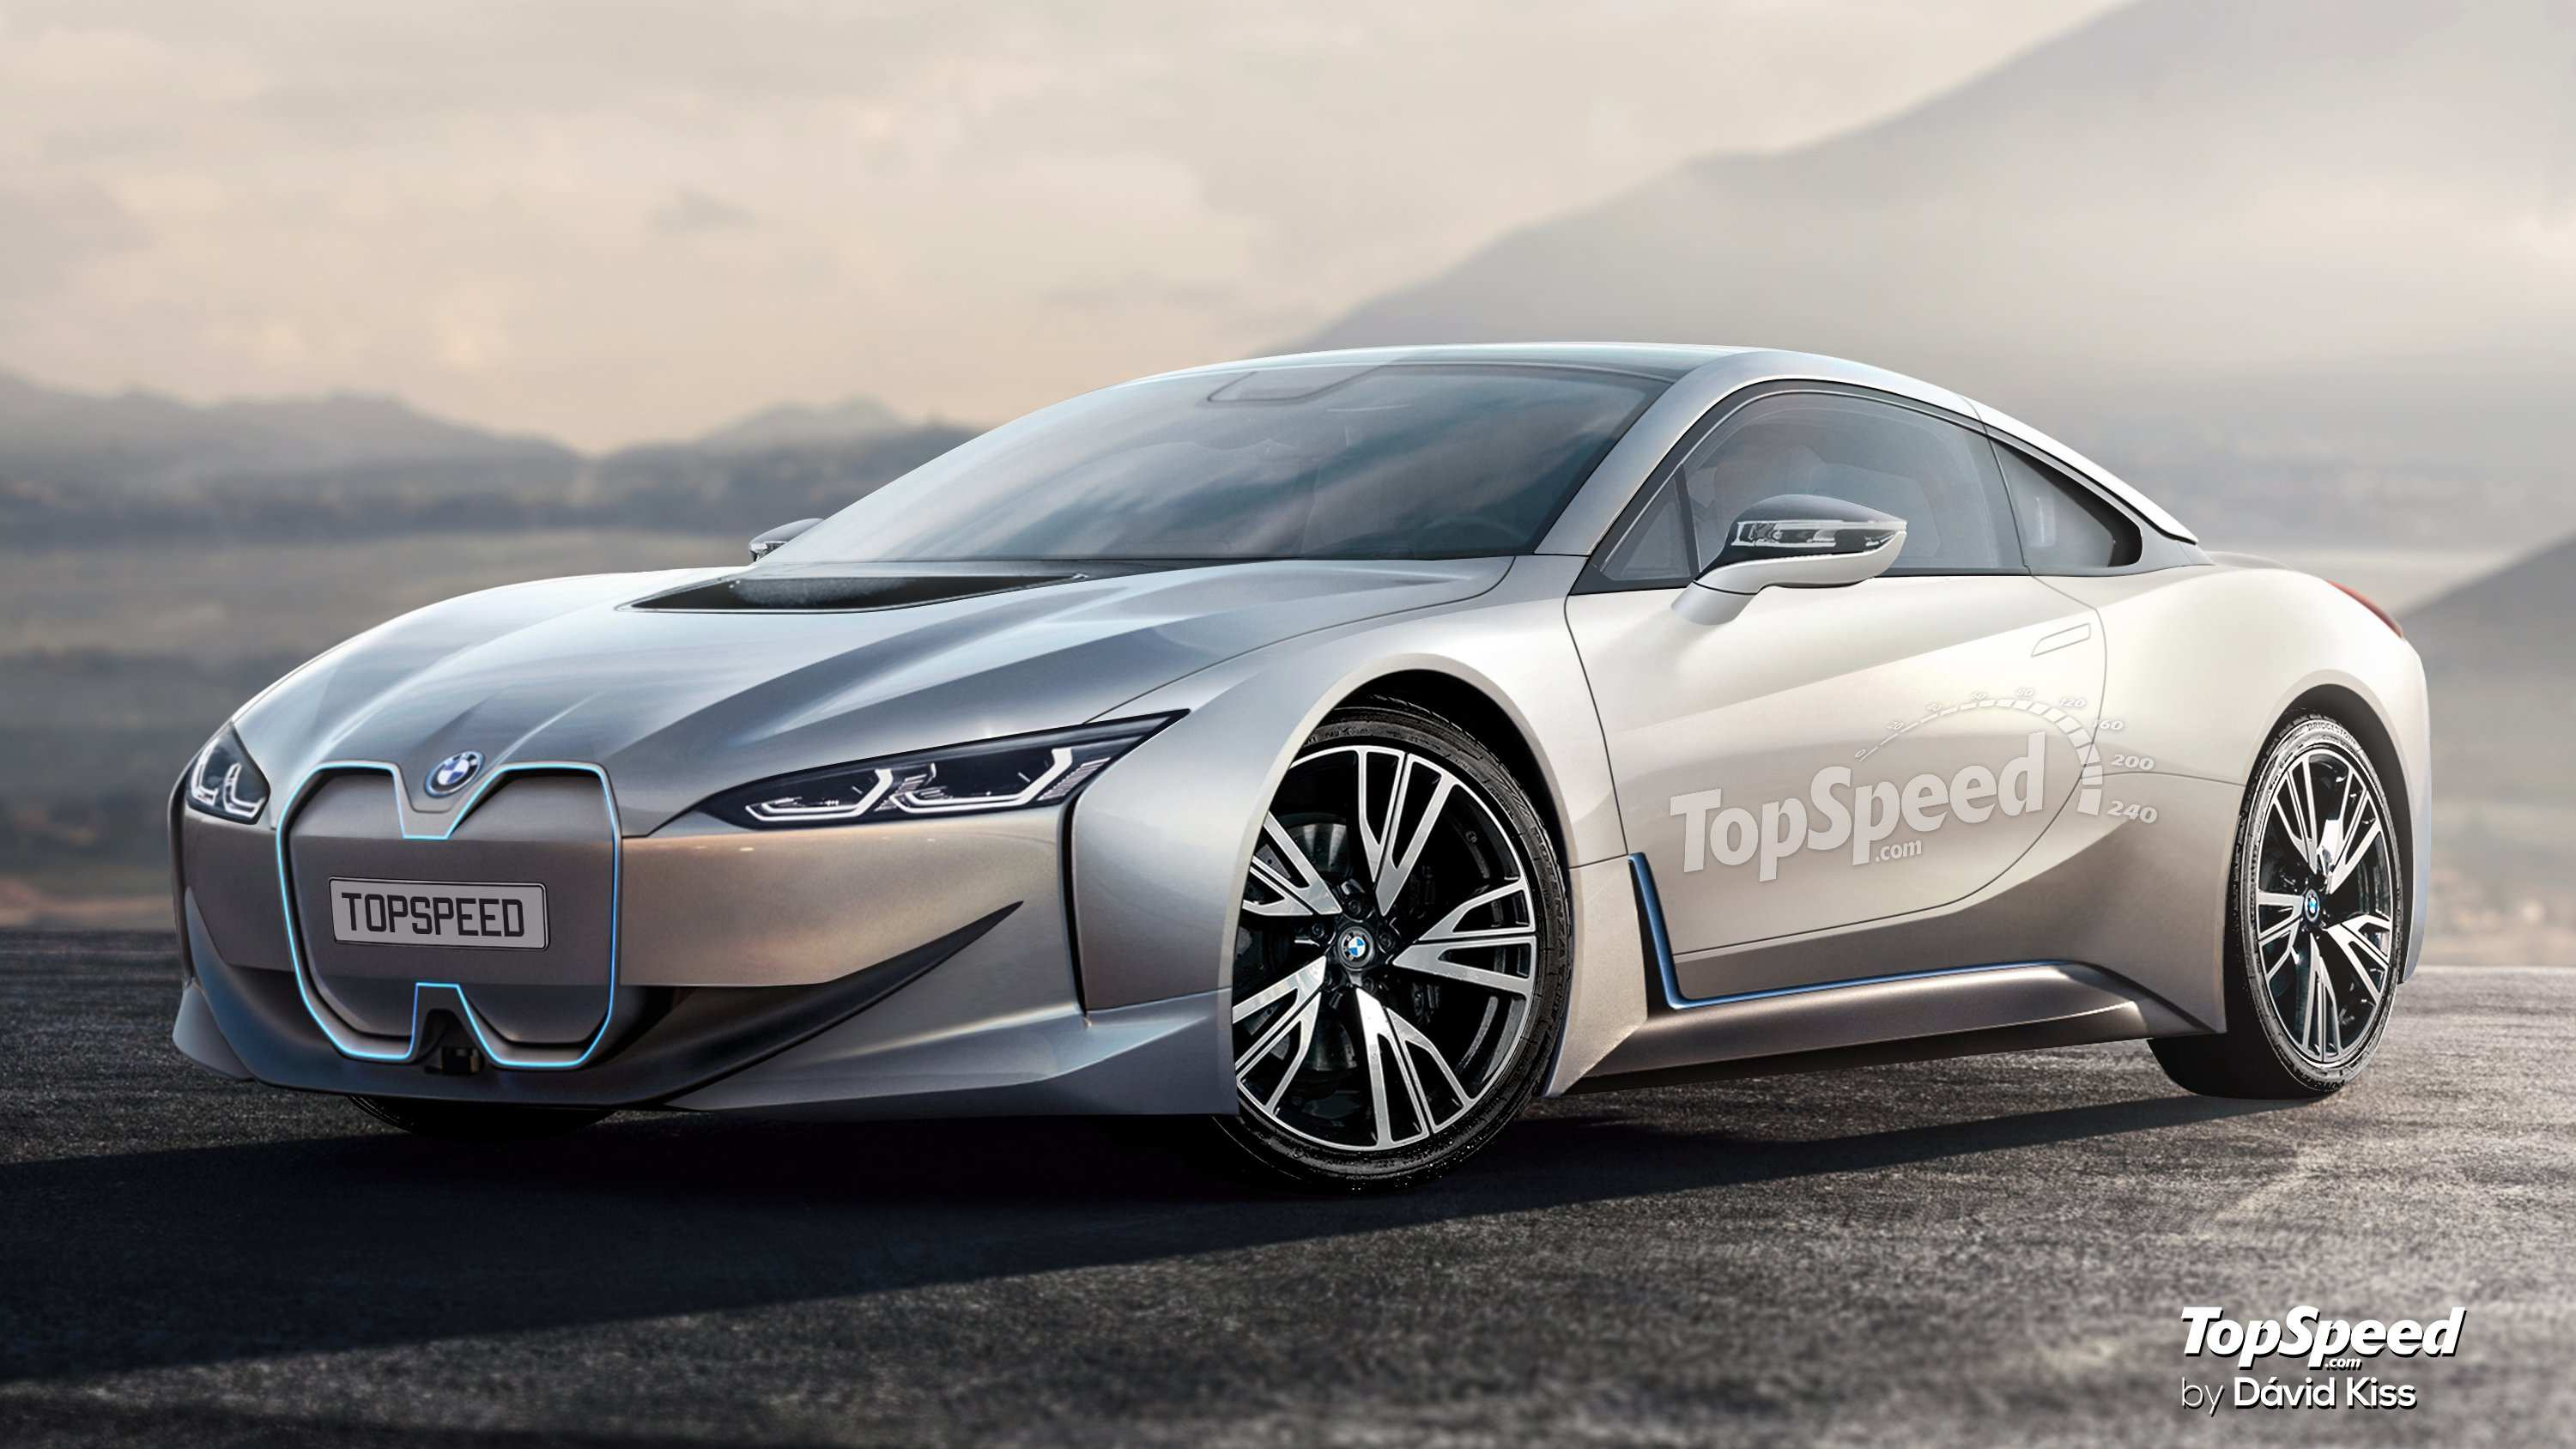 64 Concept of Bmw I3 New Model 2020 Rumors by Bmw I3 New Model 2020